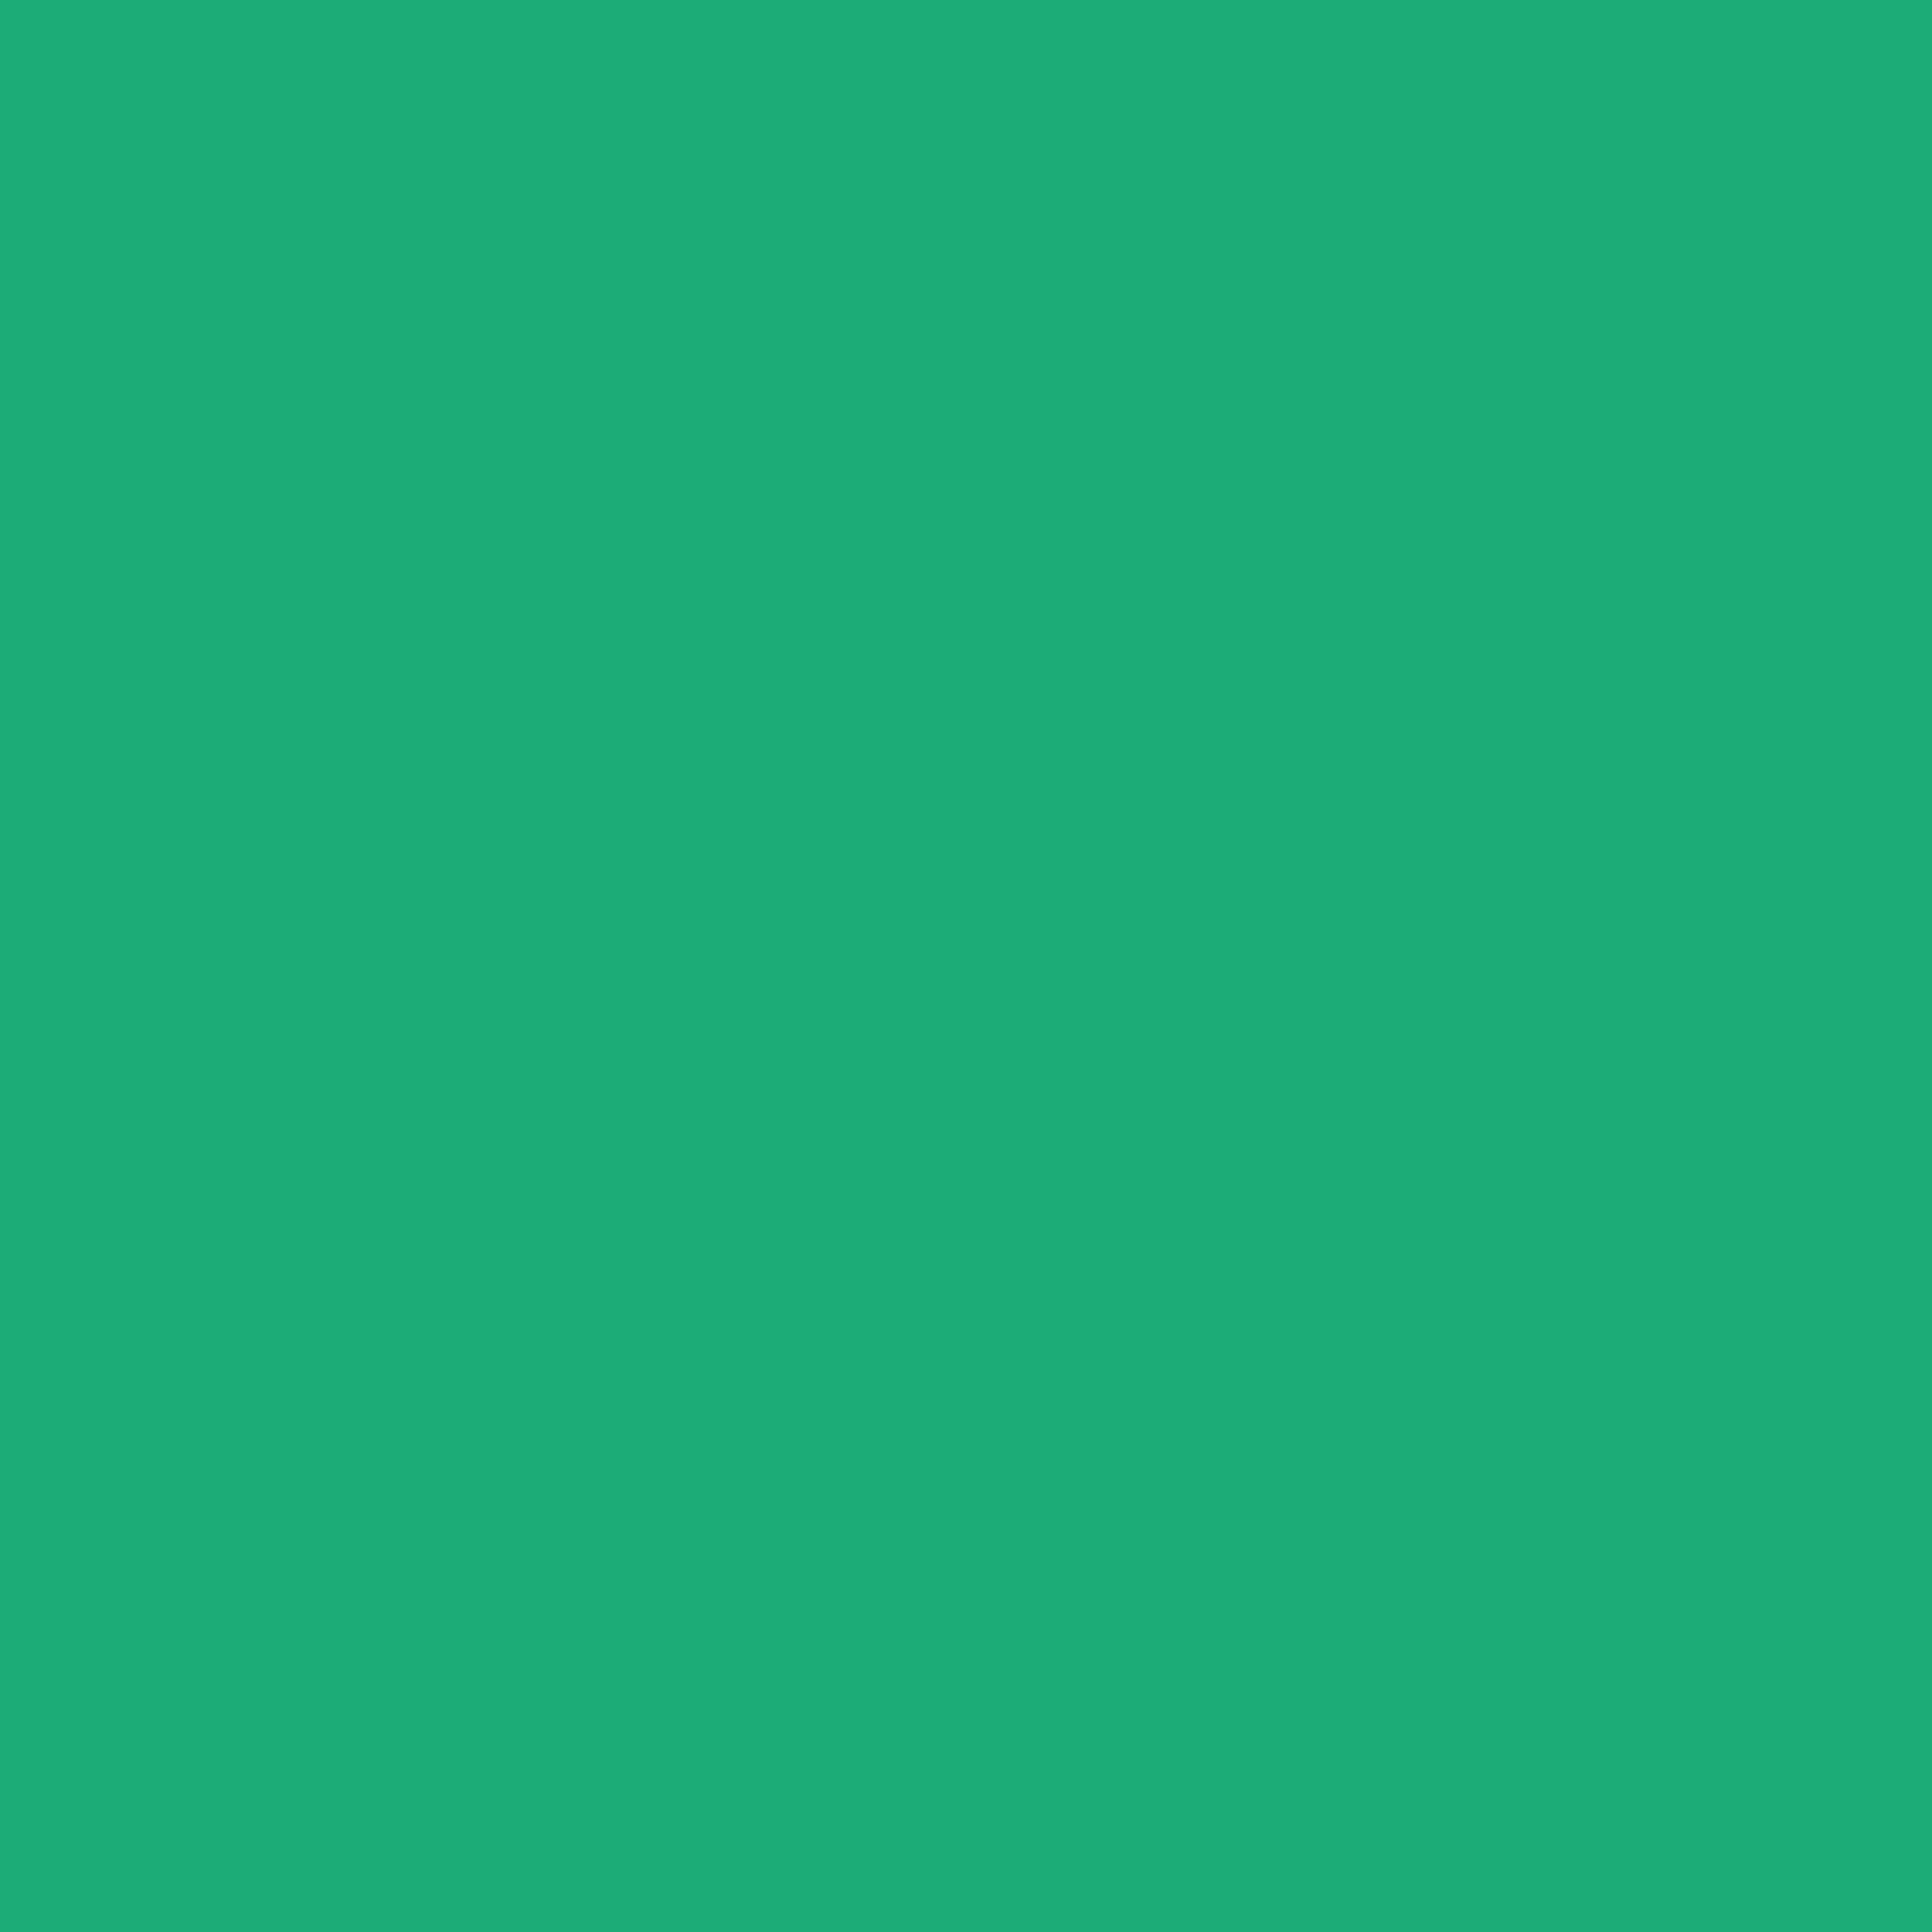 2048x2048 Green Crayola Solid Color Background